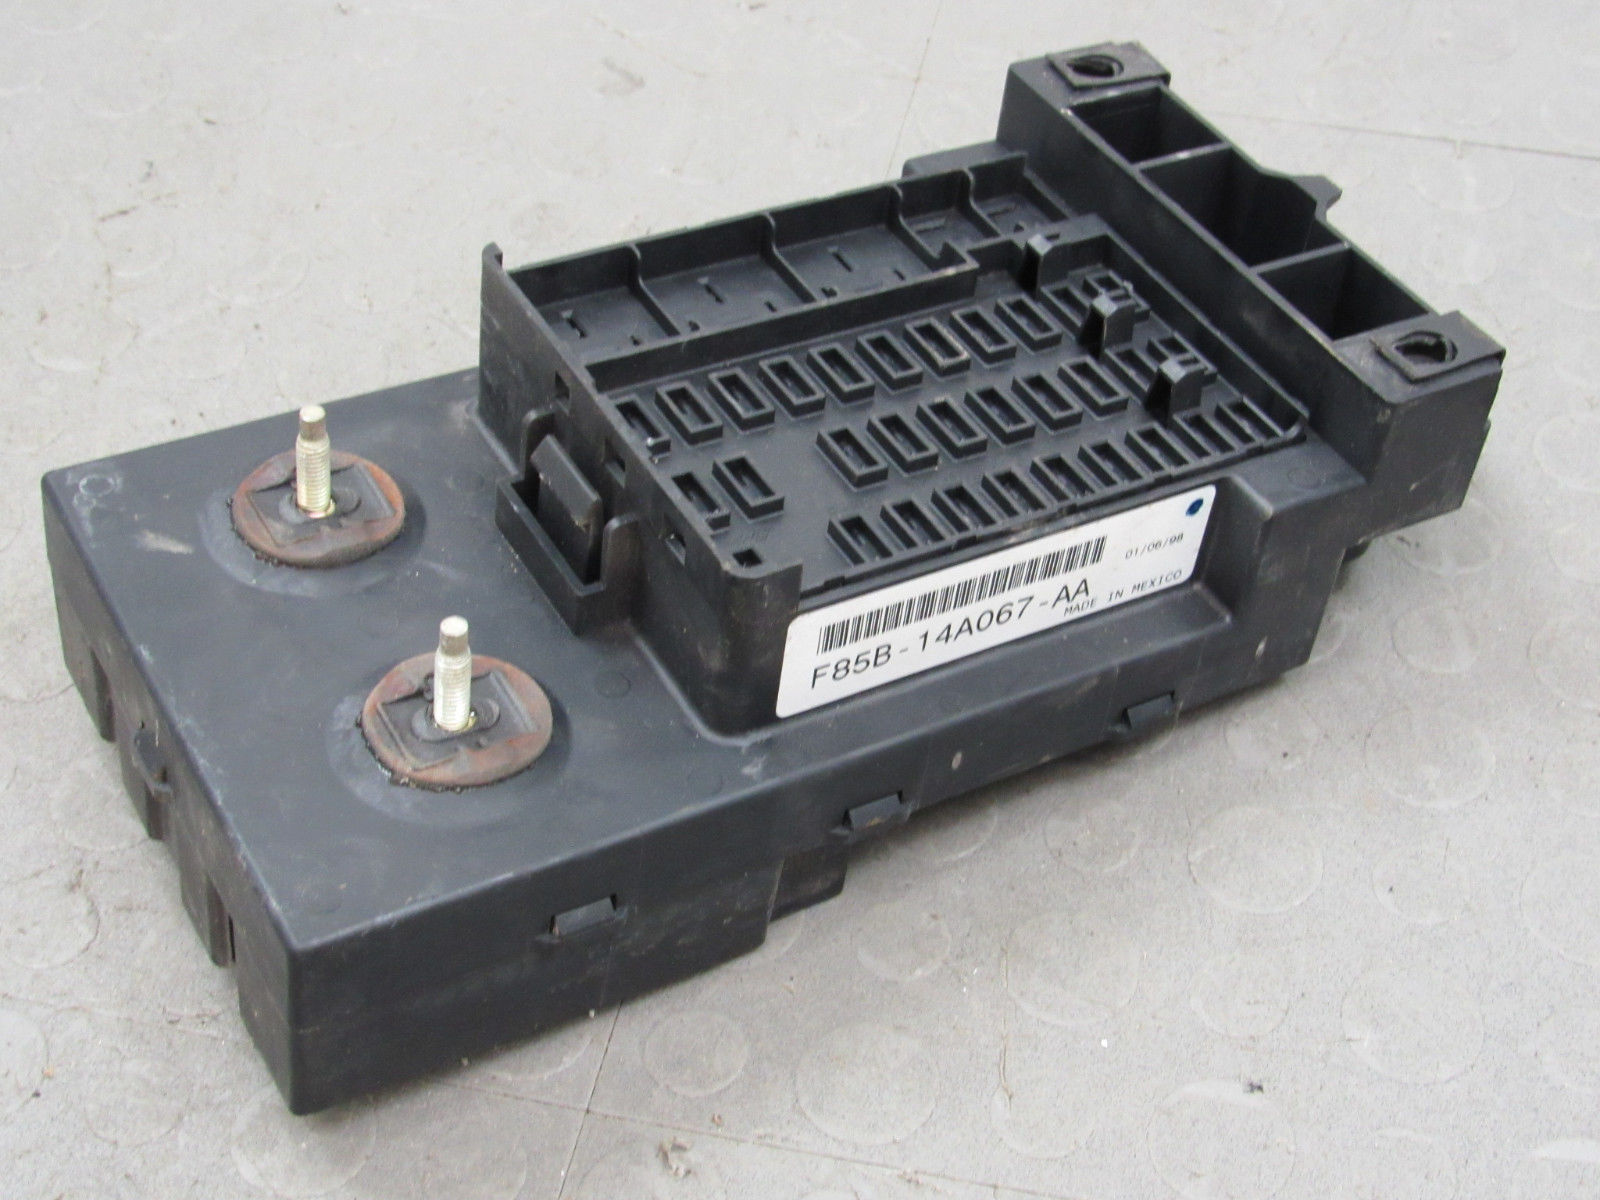 hight resolution of 97 98 ford f150 interior dash fuse box junction relay block f85b 14a067 aa m